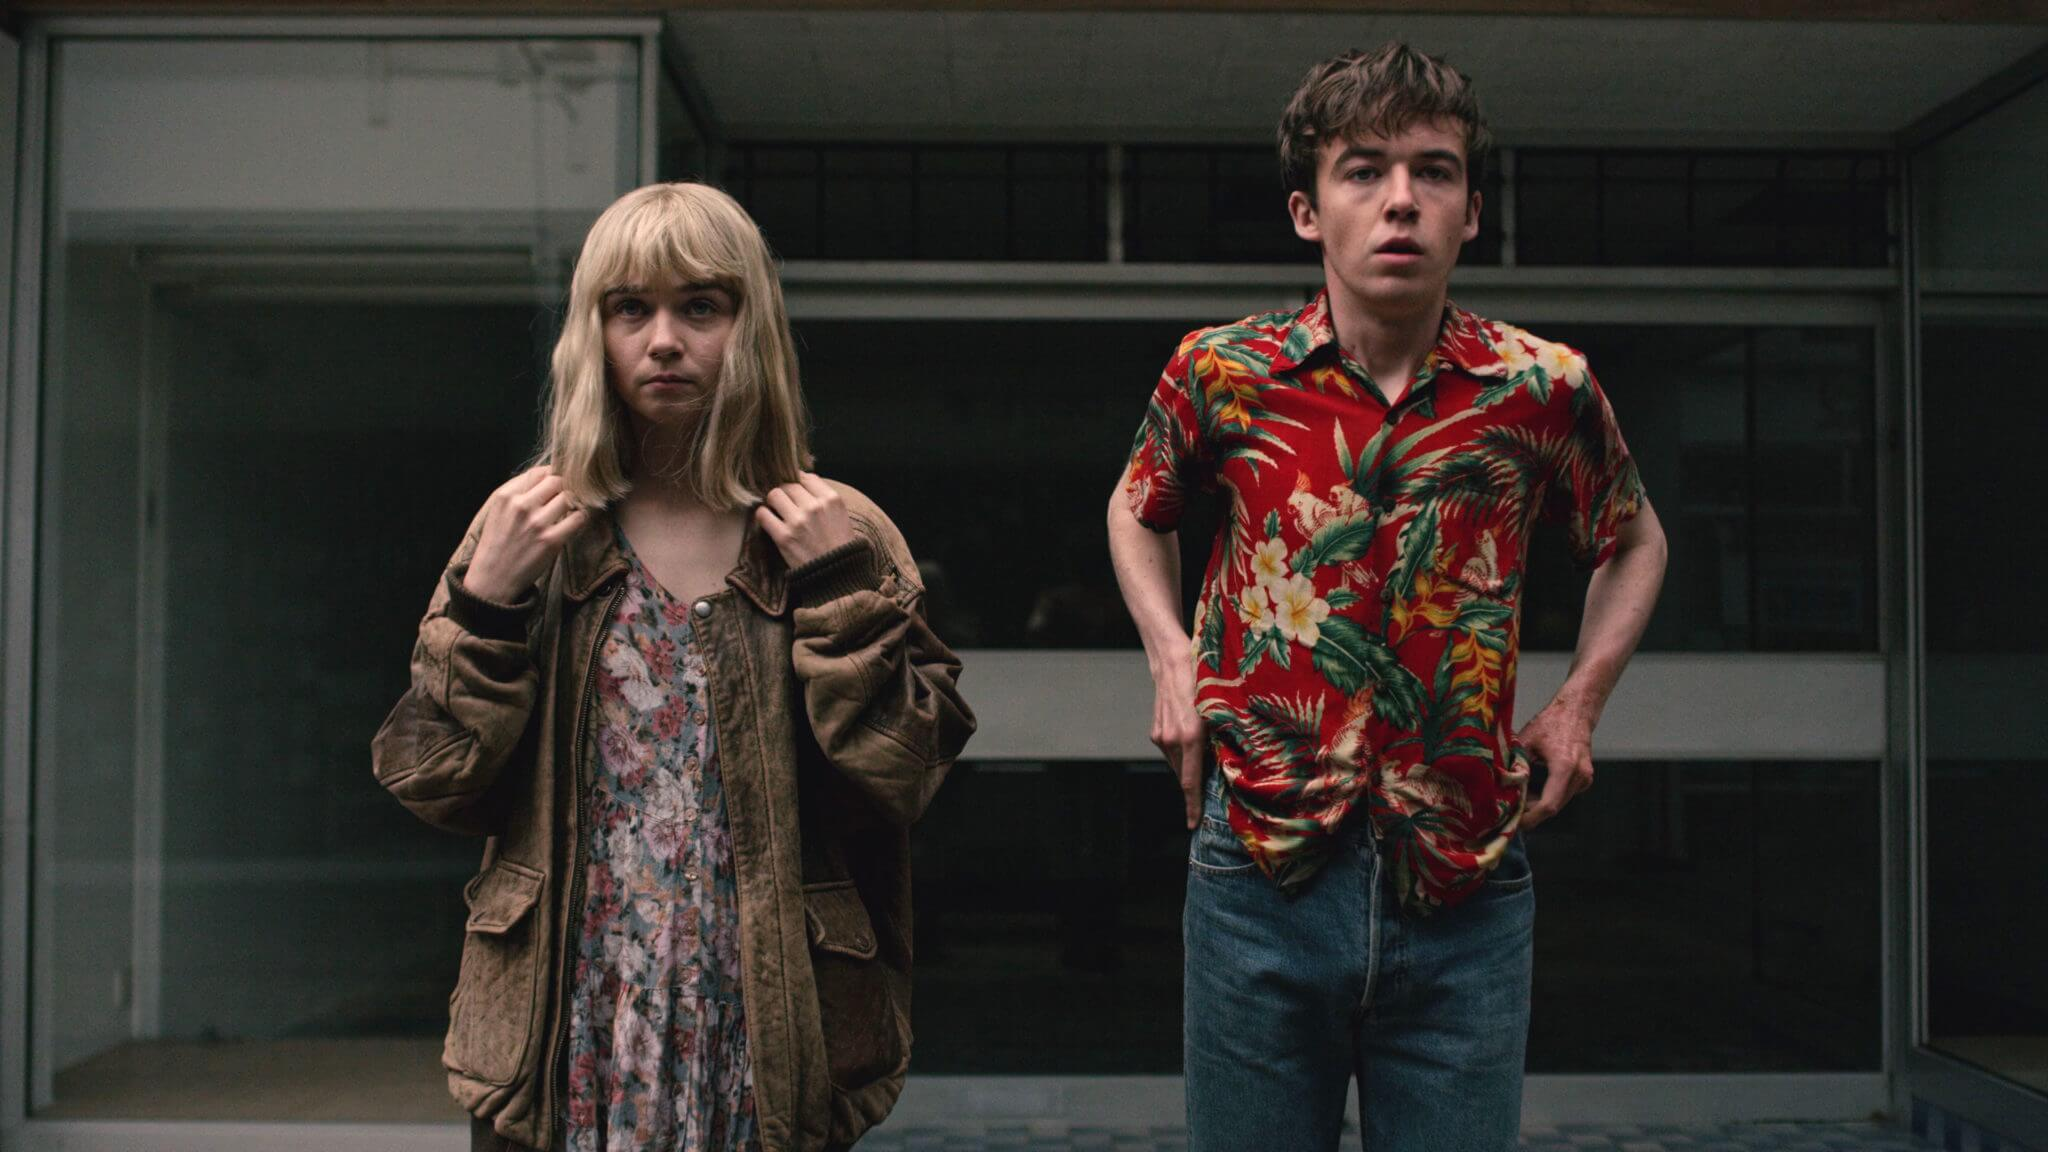 """The End of the F***ing World"": Dos misfits adolescentes que buscan la libertad en un mundo de mierda"